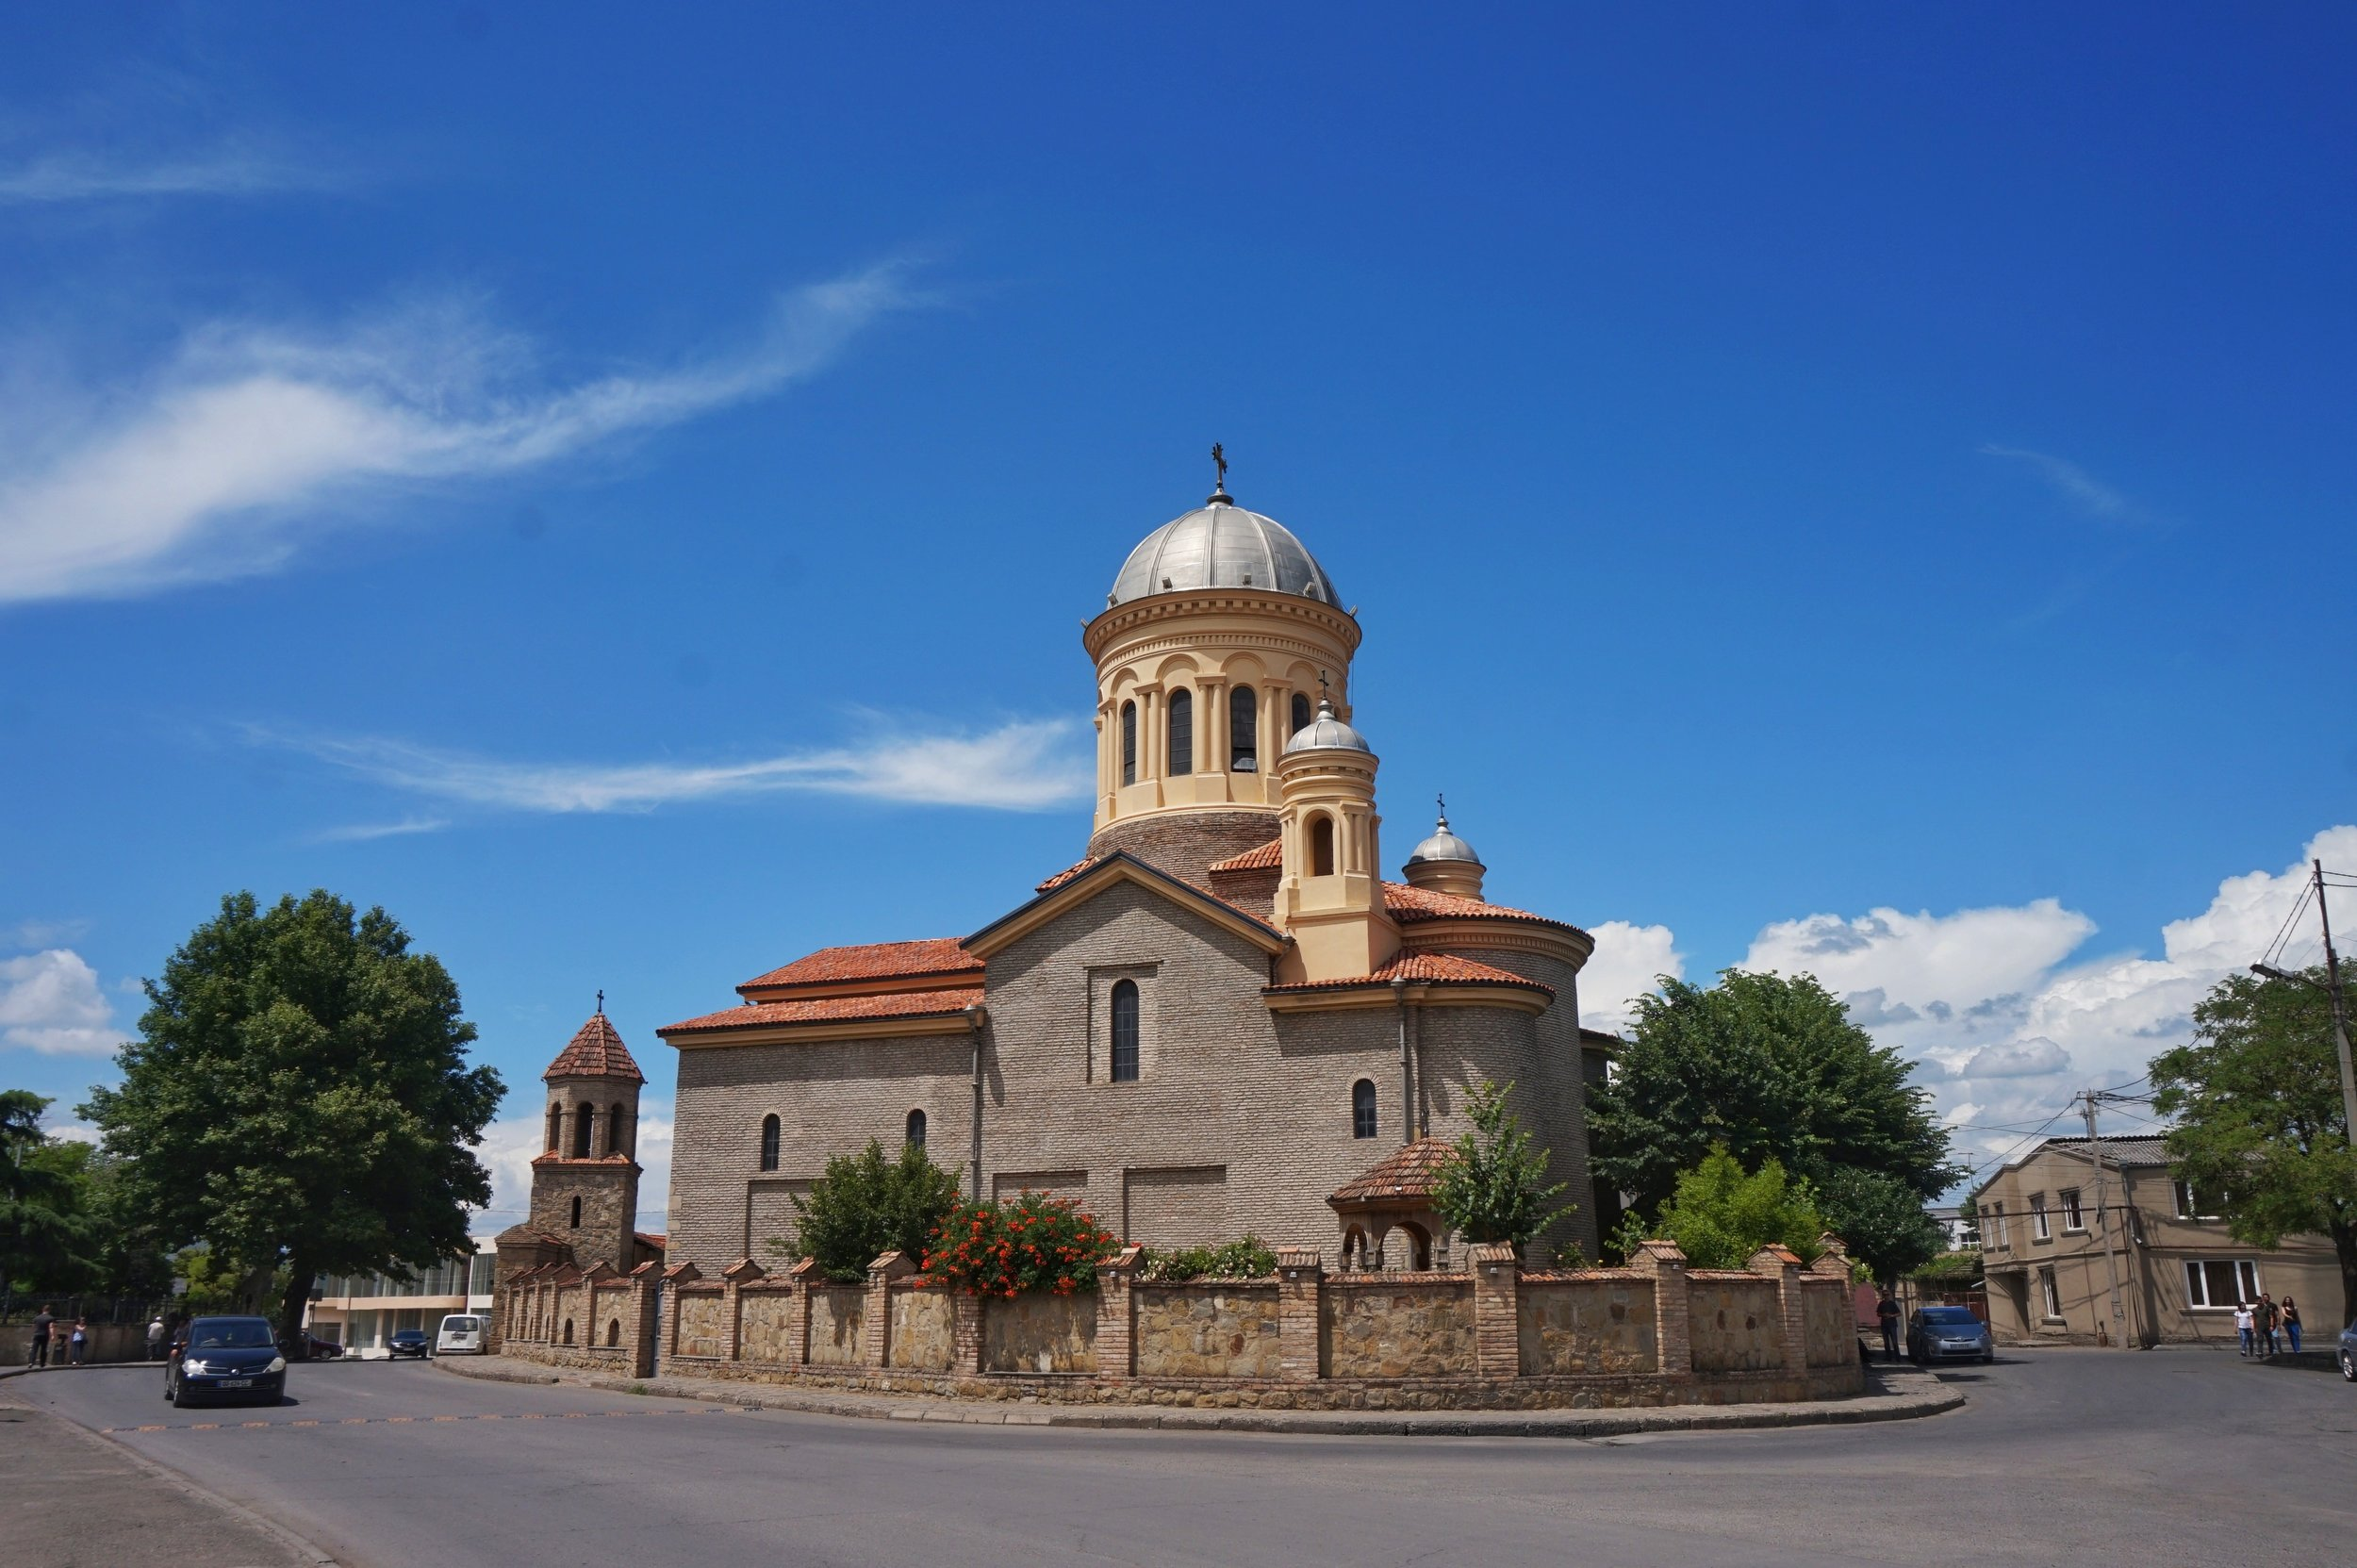 Mary's church is the most impressive church in Gori and worth a visit during your day trip to Gori